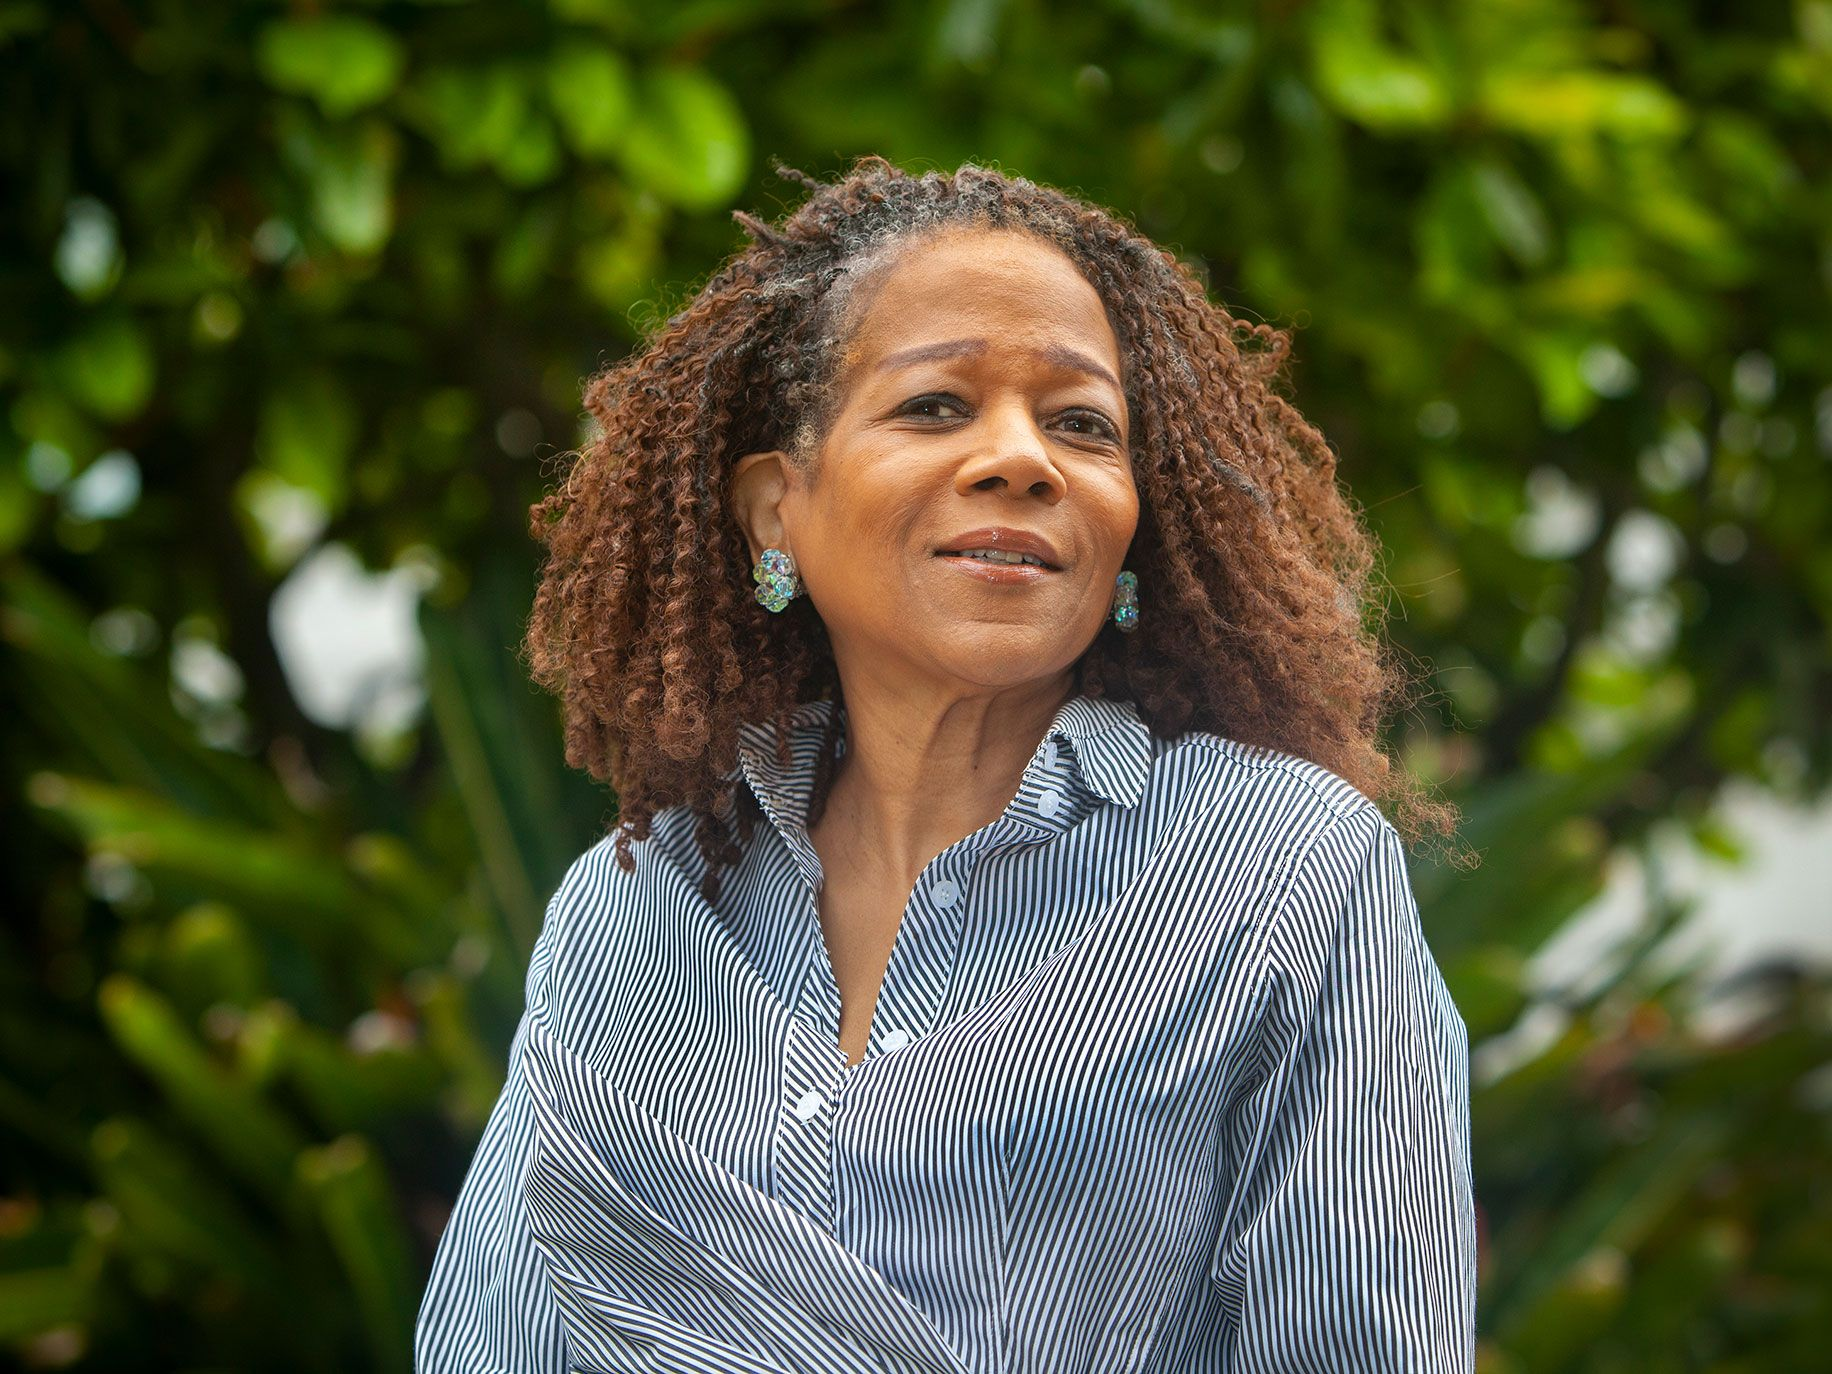 """Jazz singer Paula West's career has been one of brilliant peaks separated by long, flat pauses. """"I just try to look at the glass as half full rather than half empty,"""" she says."""